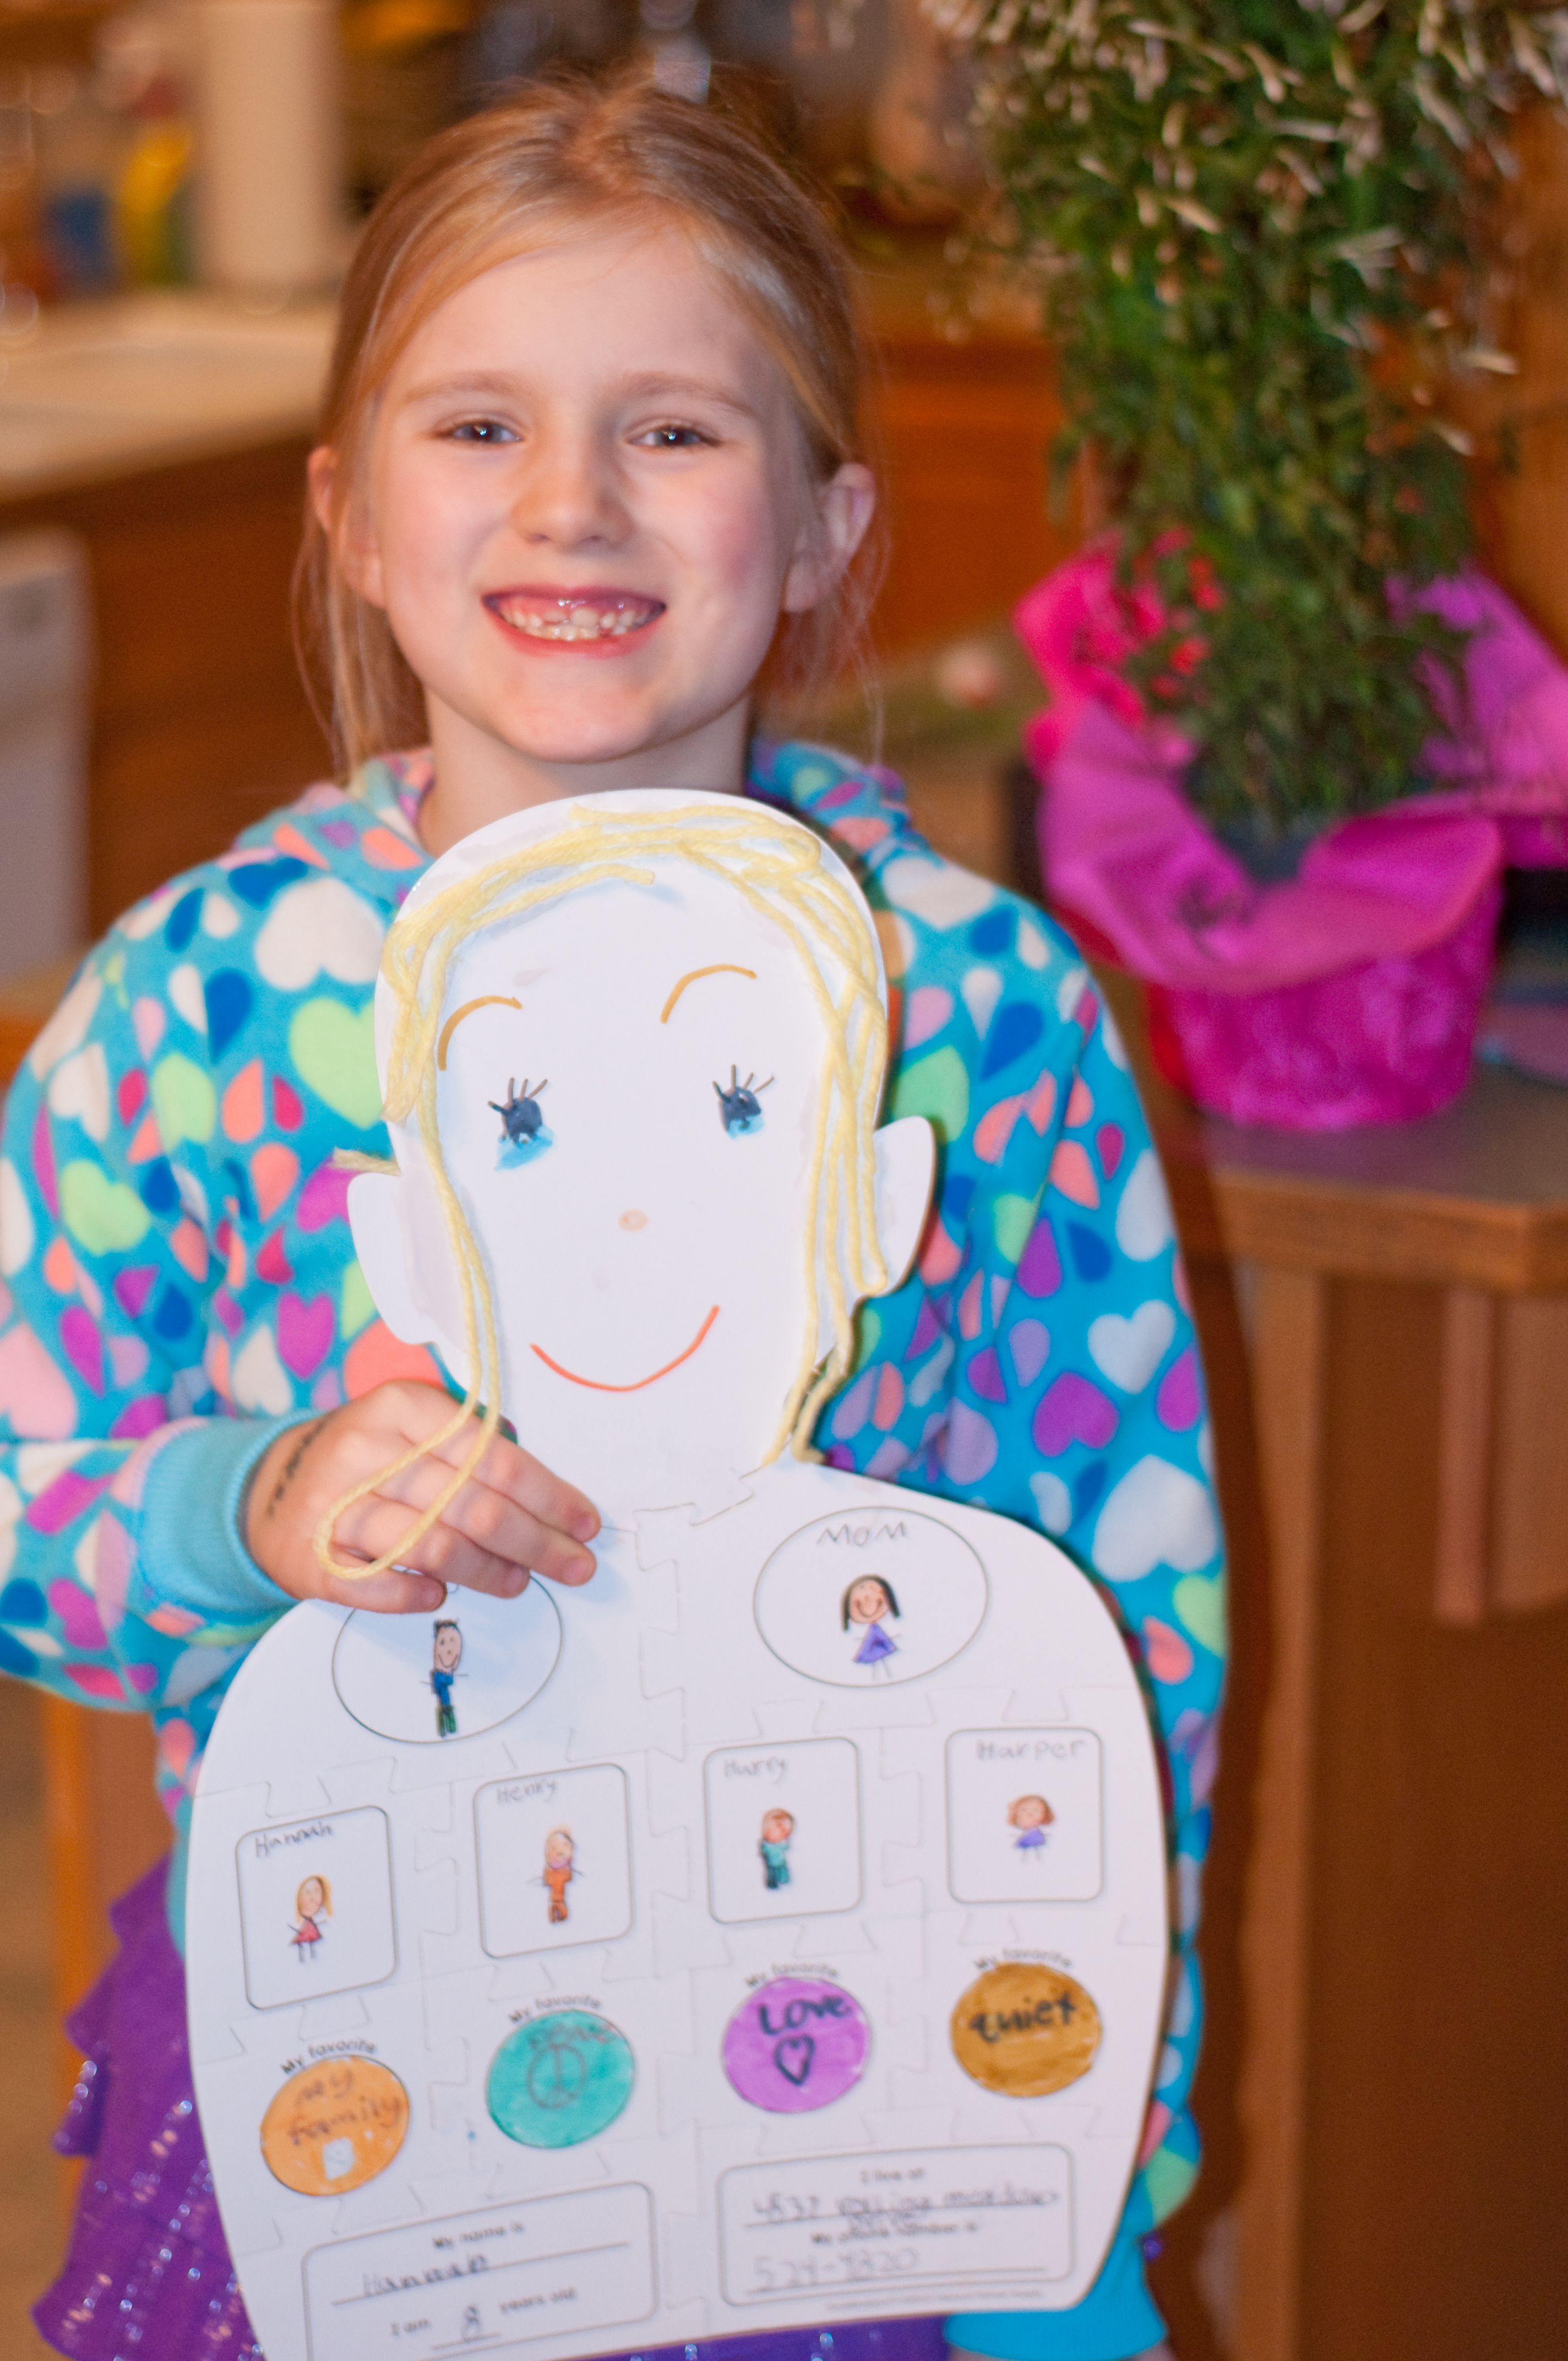 Excellerations® Story of Me Learning Craft + Fun and Creative Hands-on Project for Kids